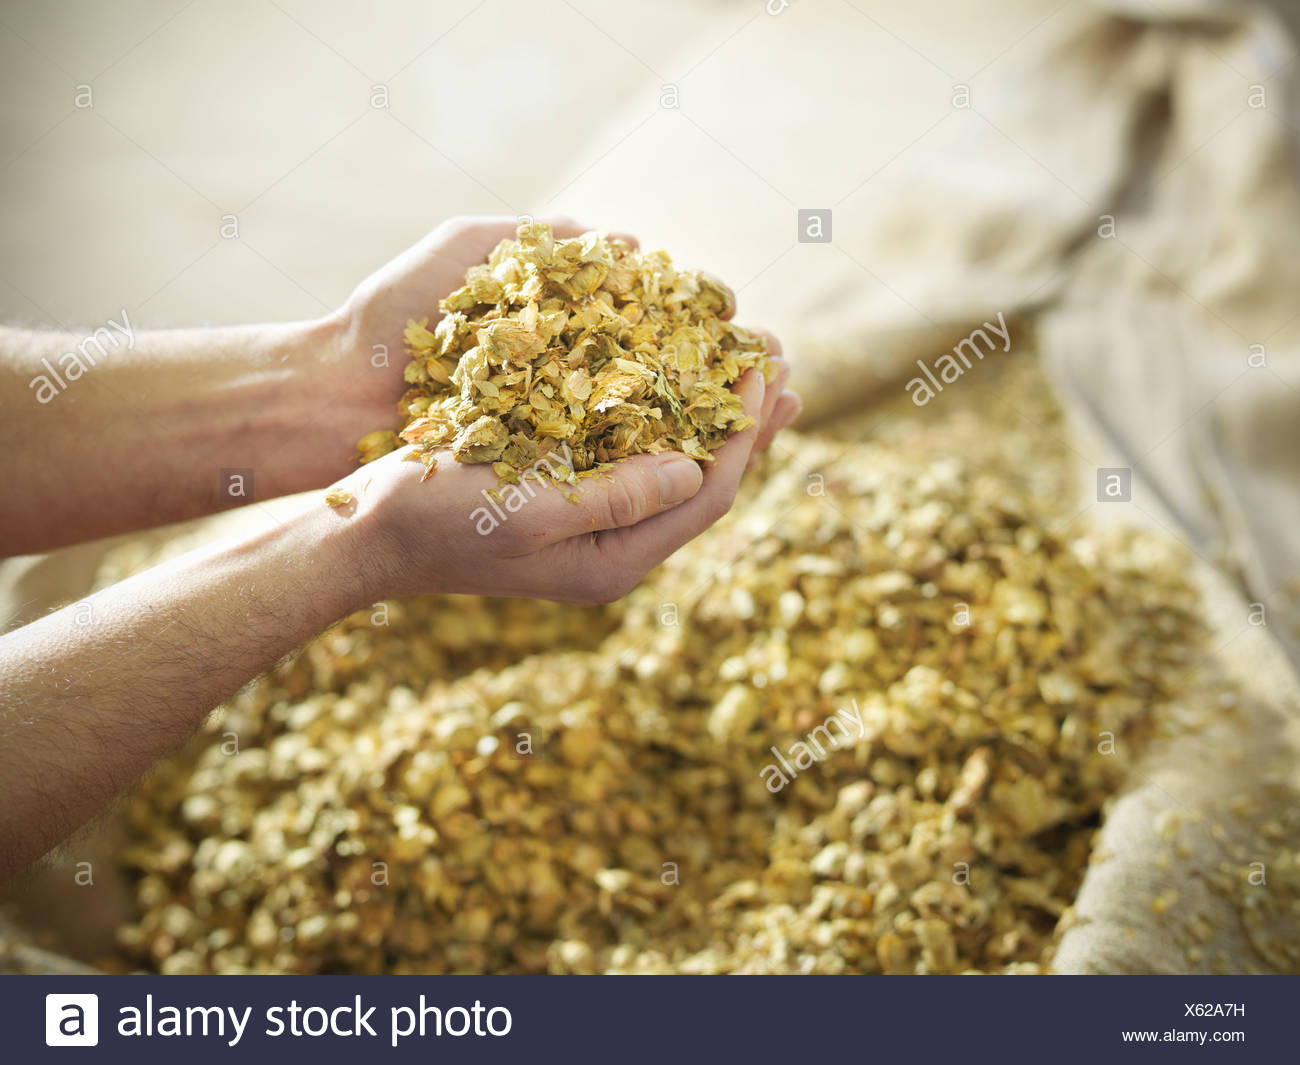 Hands holding hops in brewery - Stock Image